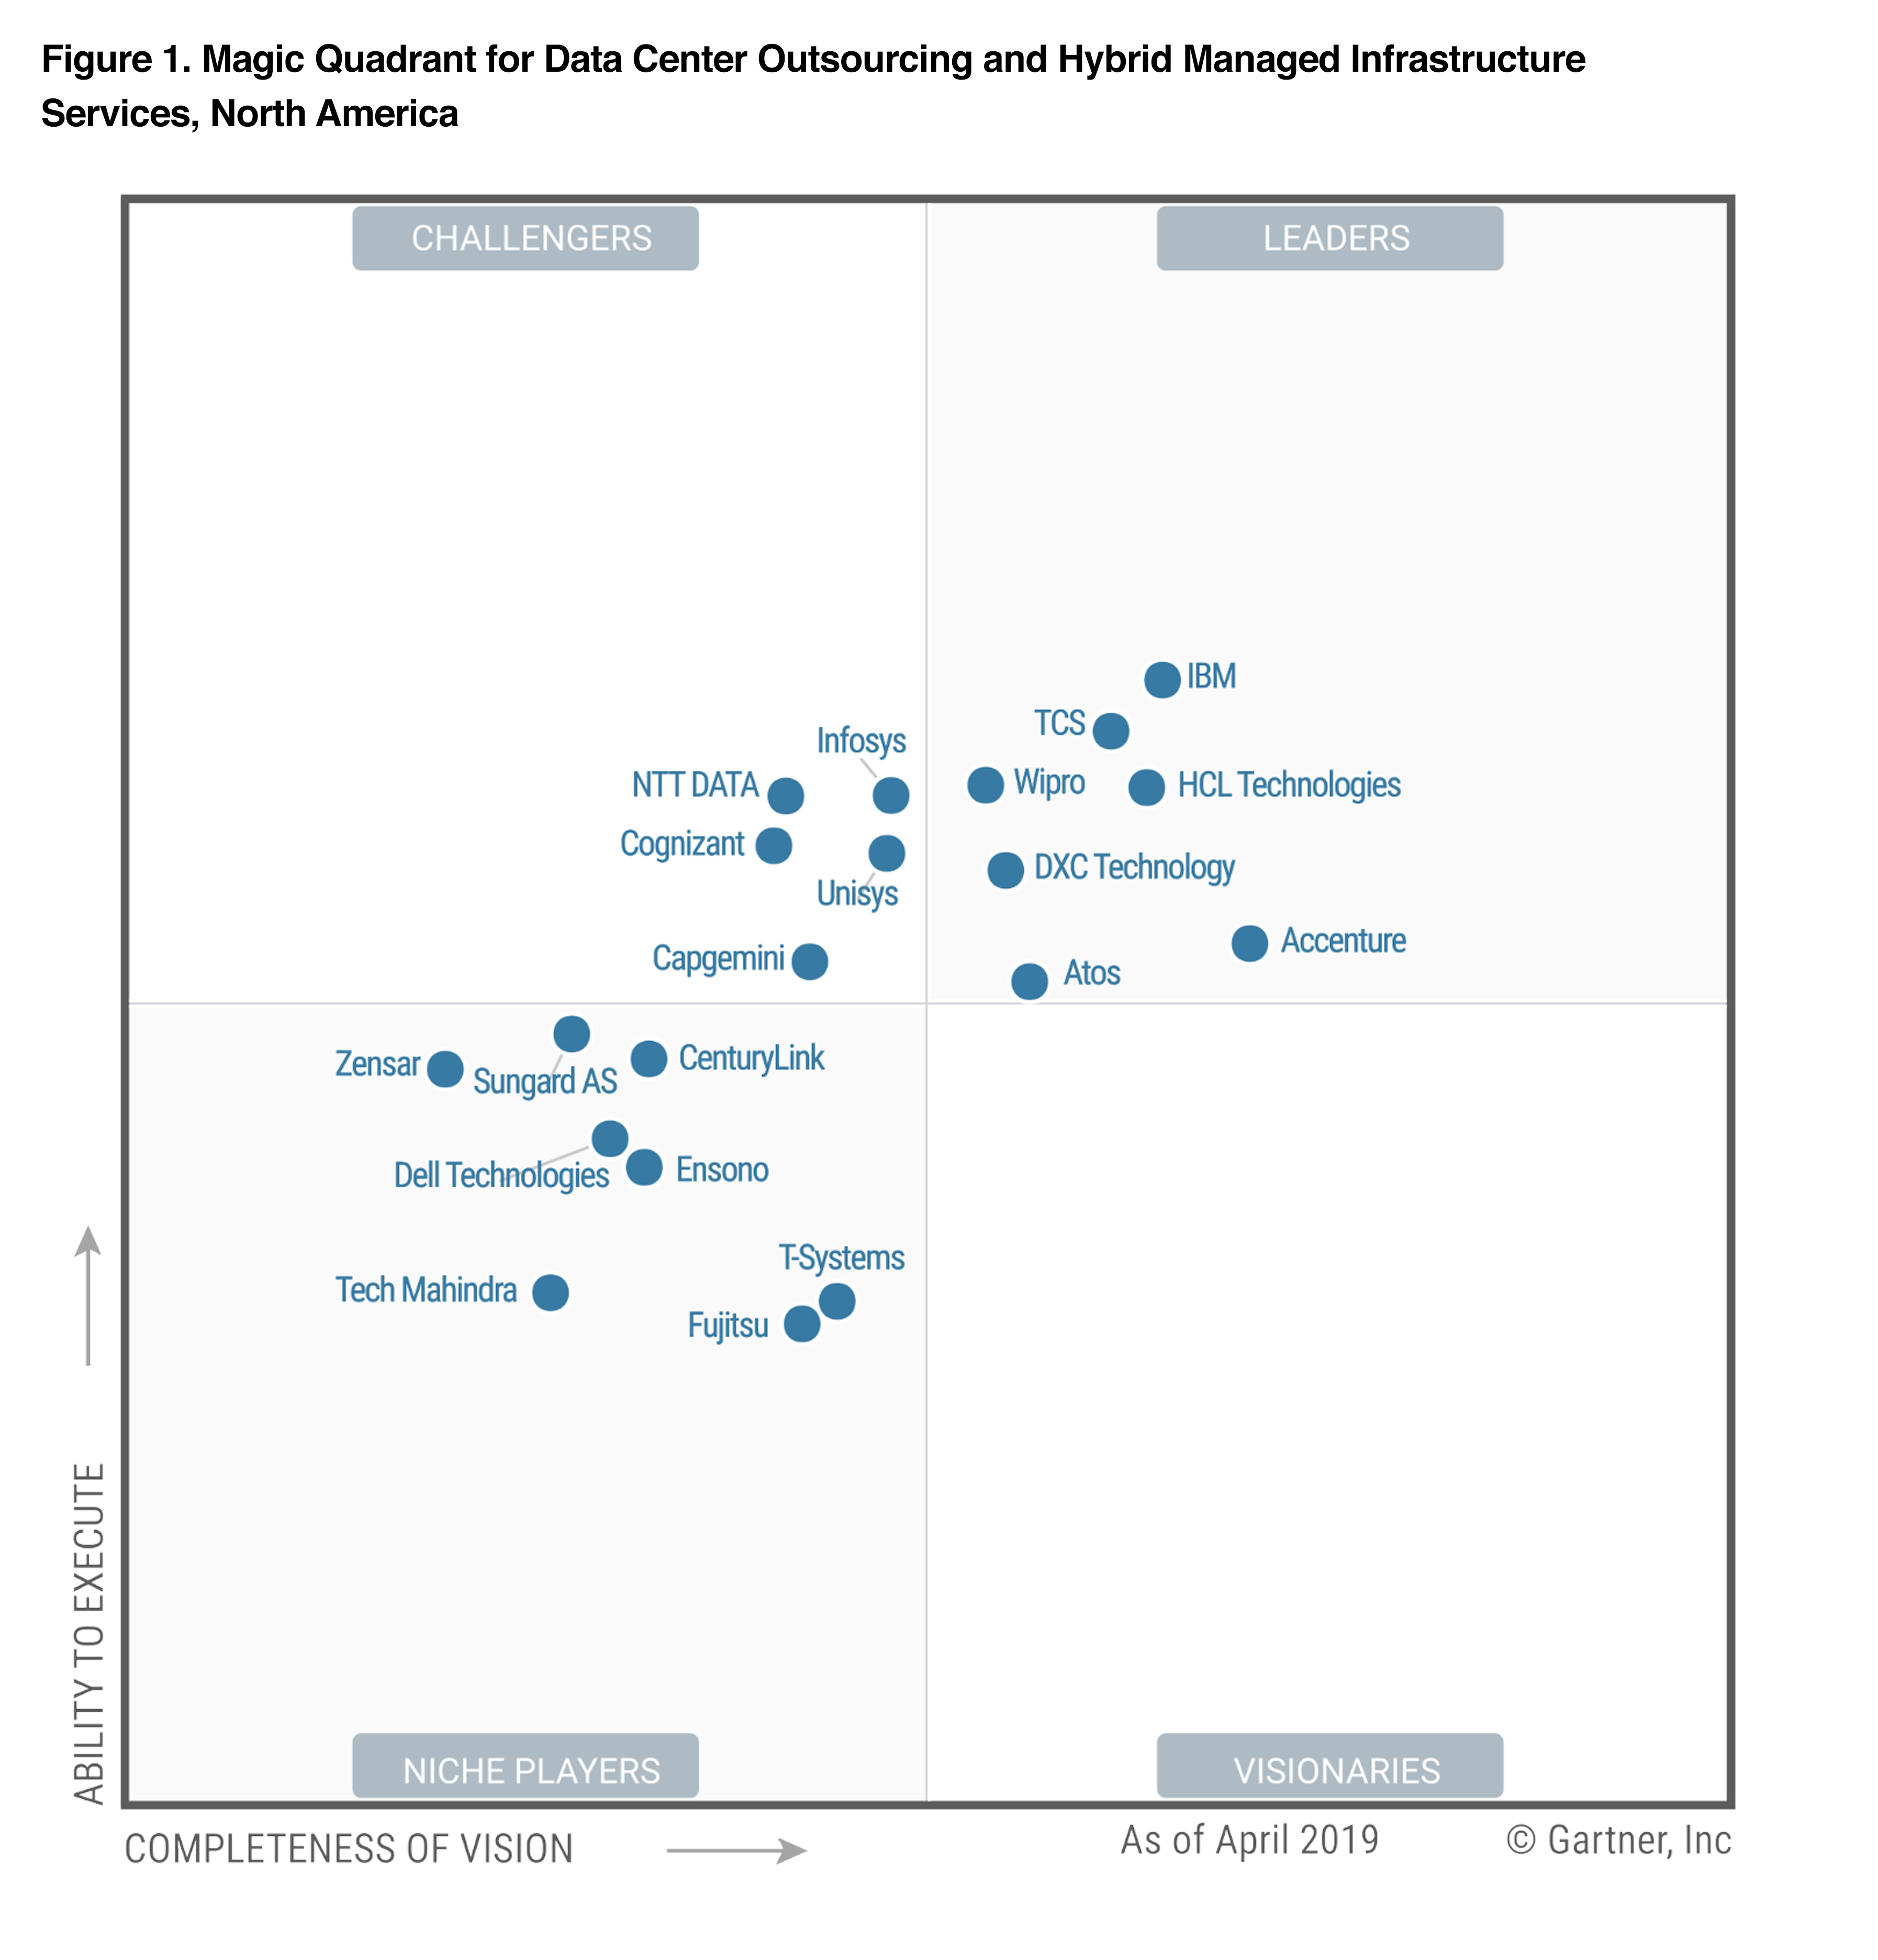 Wipro positioned as a 'Leader' in Gartner Magic Quadrant for Data Center Outsourcing and Hybrid Infrastructure Managed Services, North America